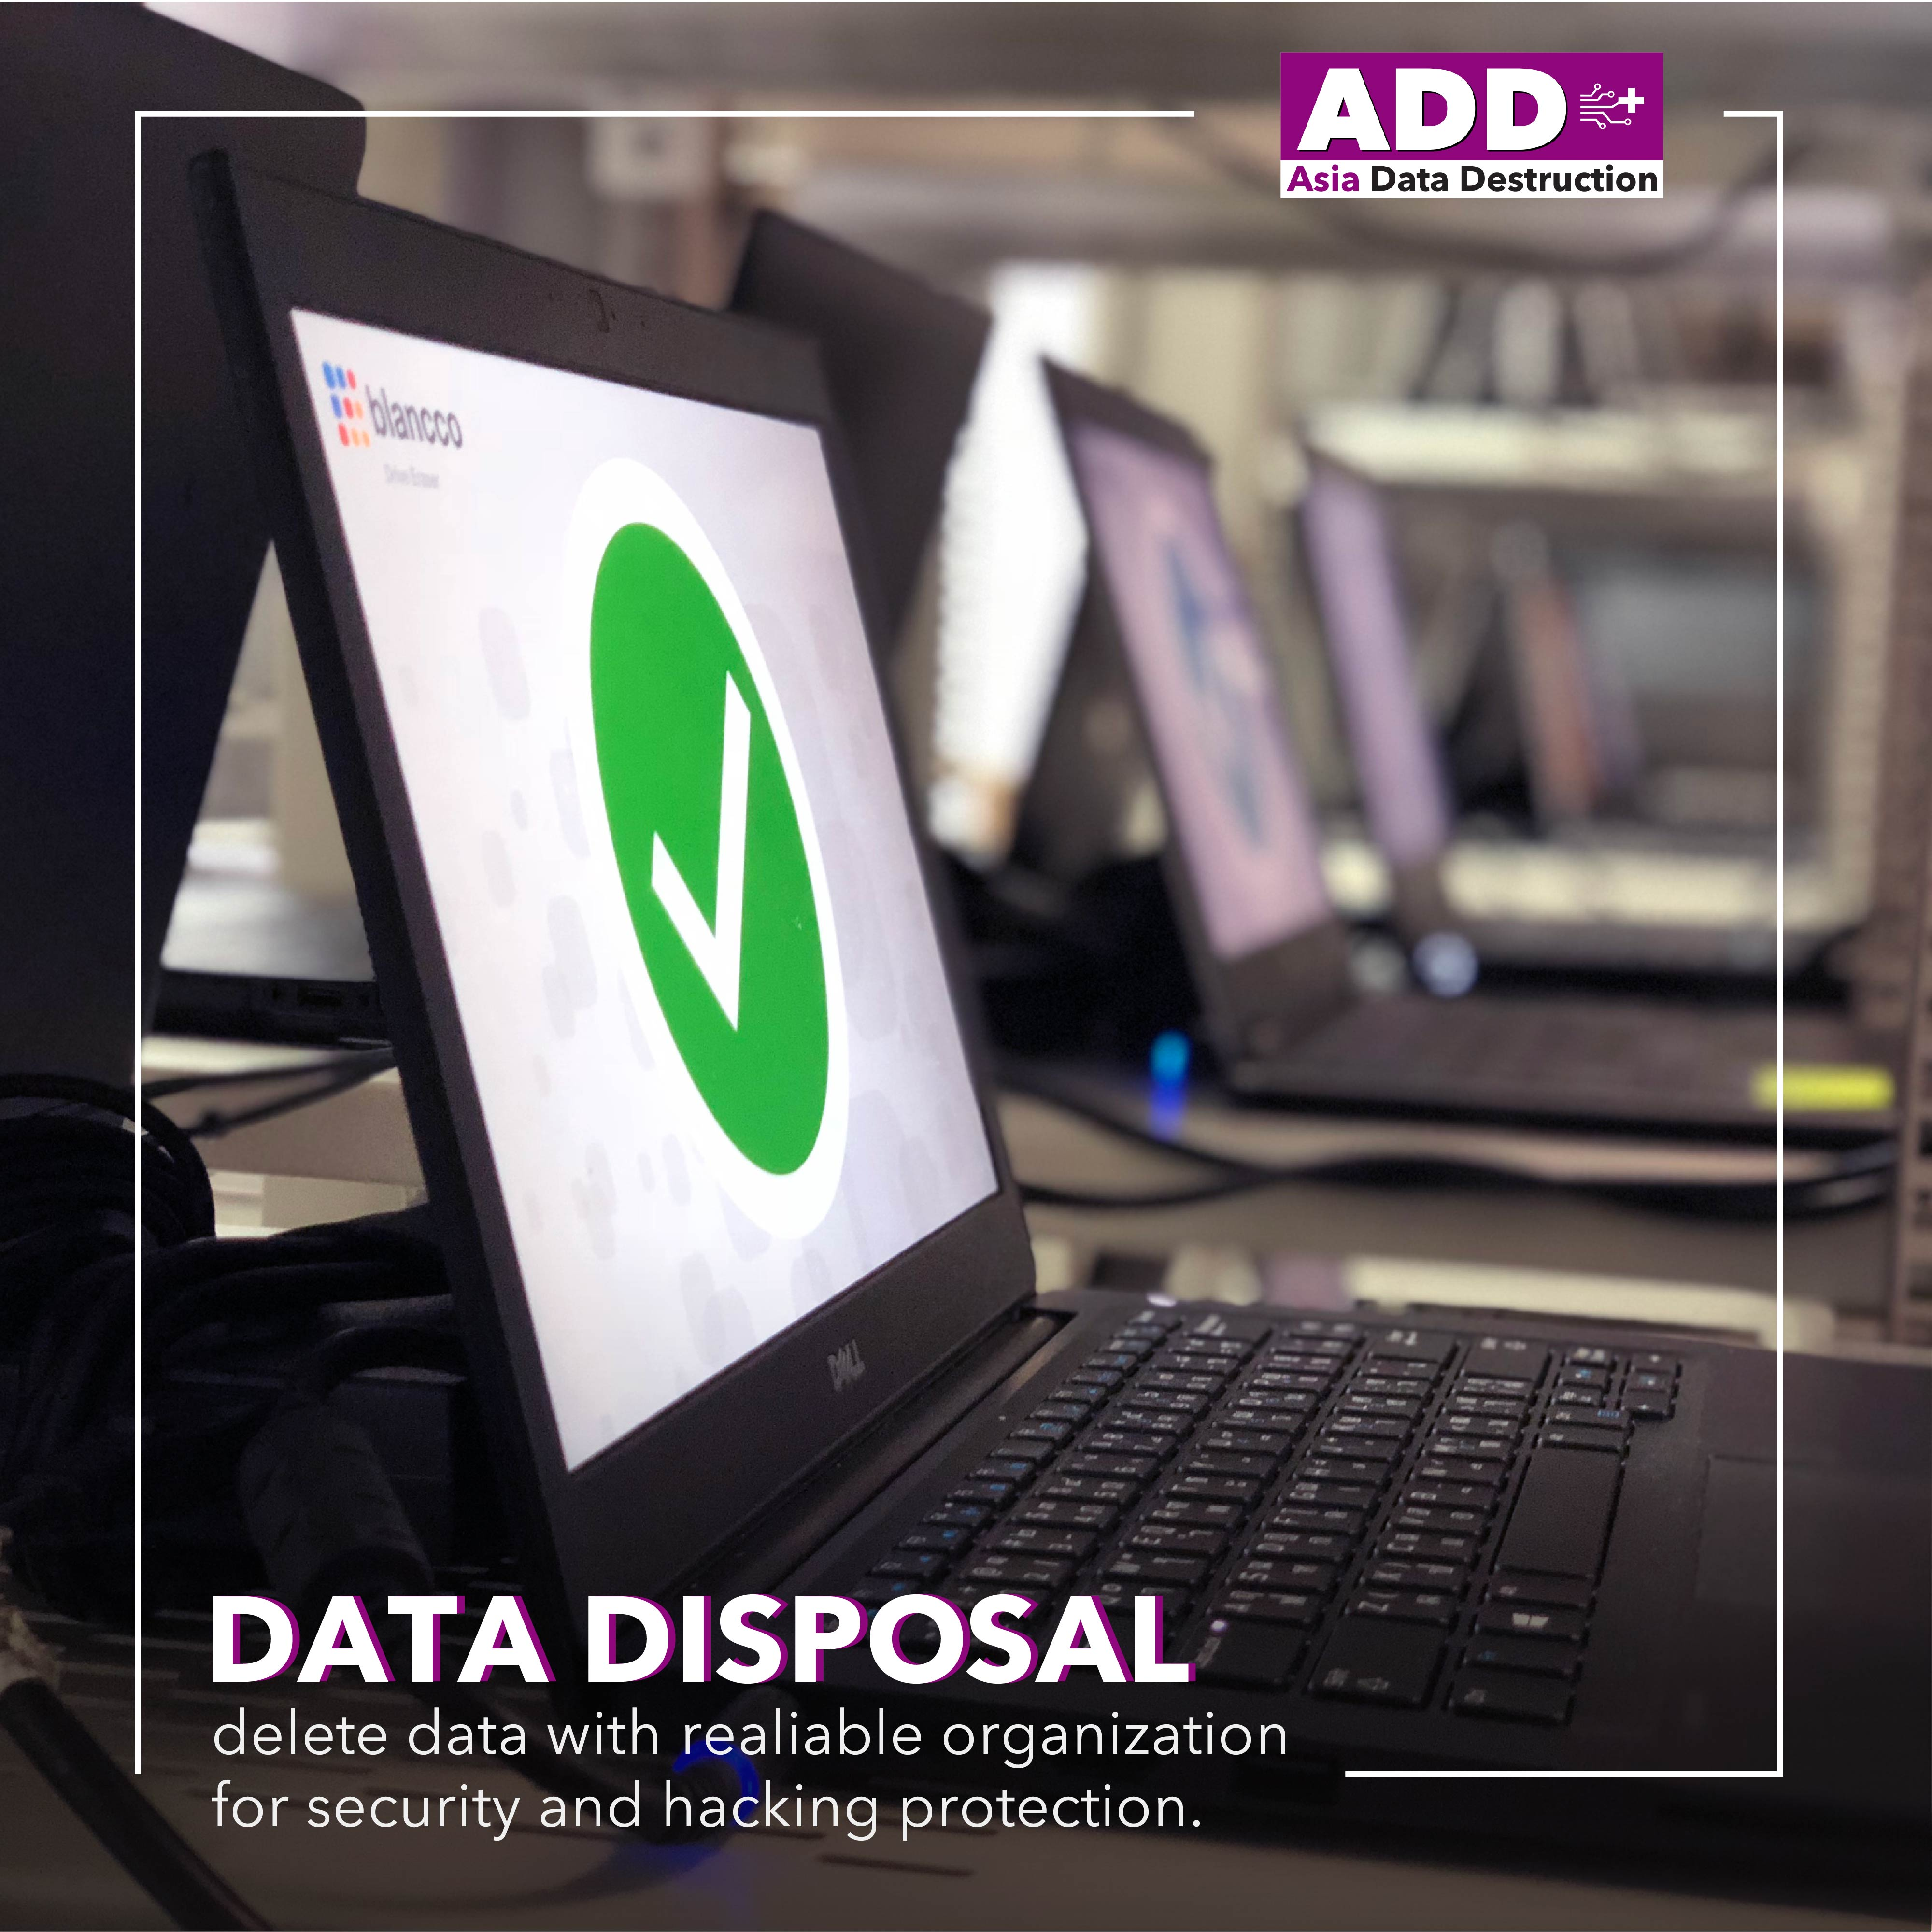 COVID-19: How to closed companies deal with their data and IT resources? 10